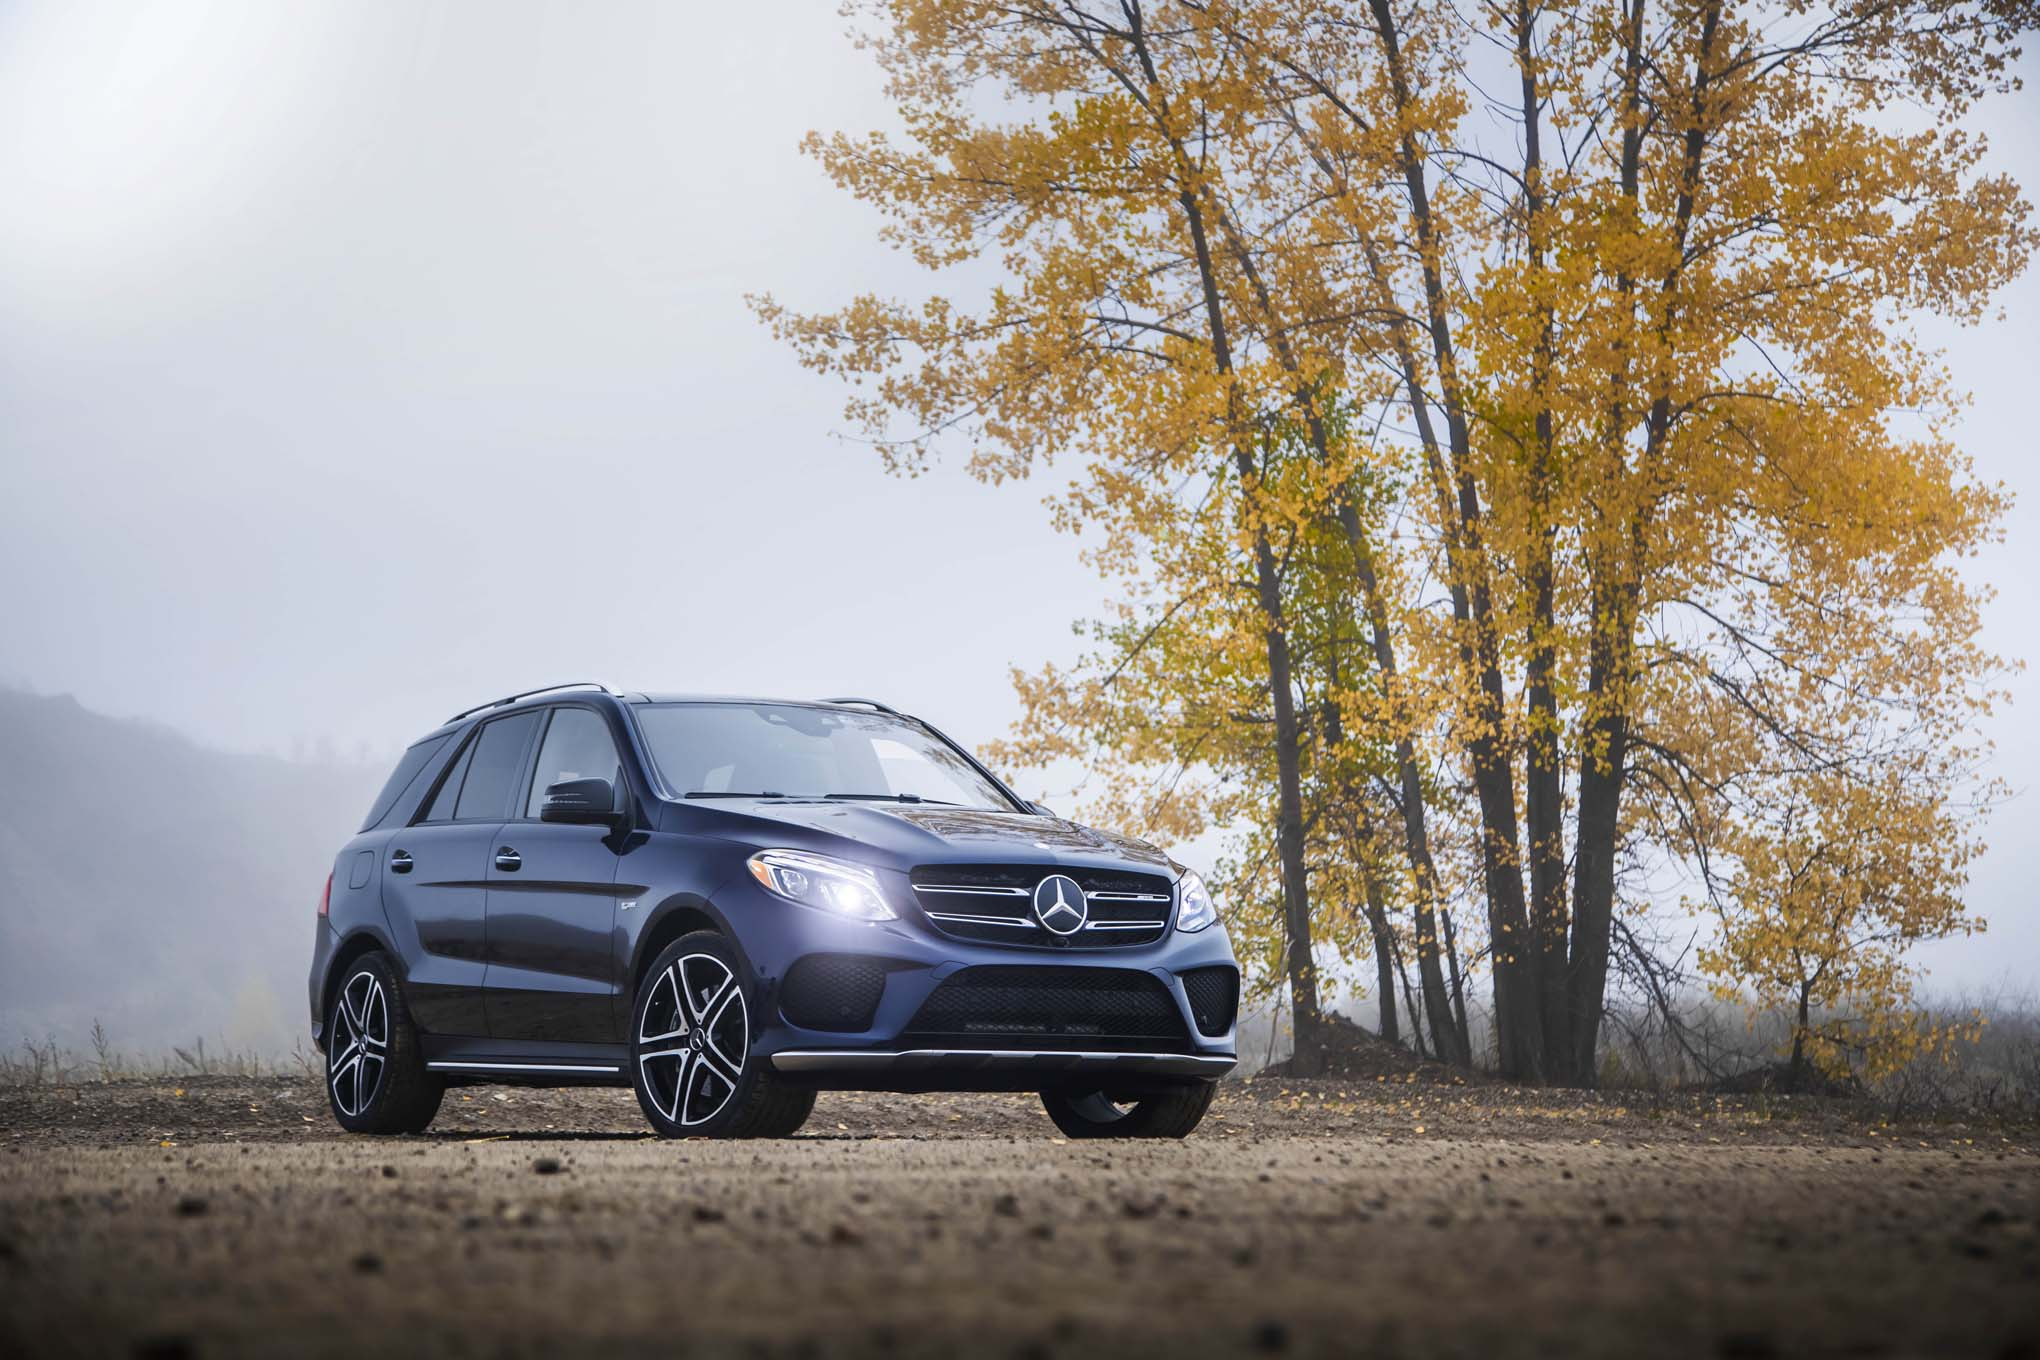 9 Passenger Suv >> First Look: 2017 Mercedes-AMG GLE43 | Automobile Magazine